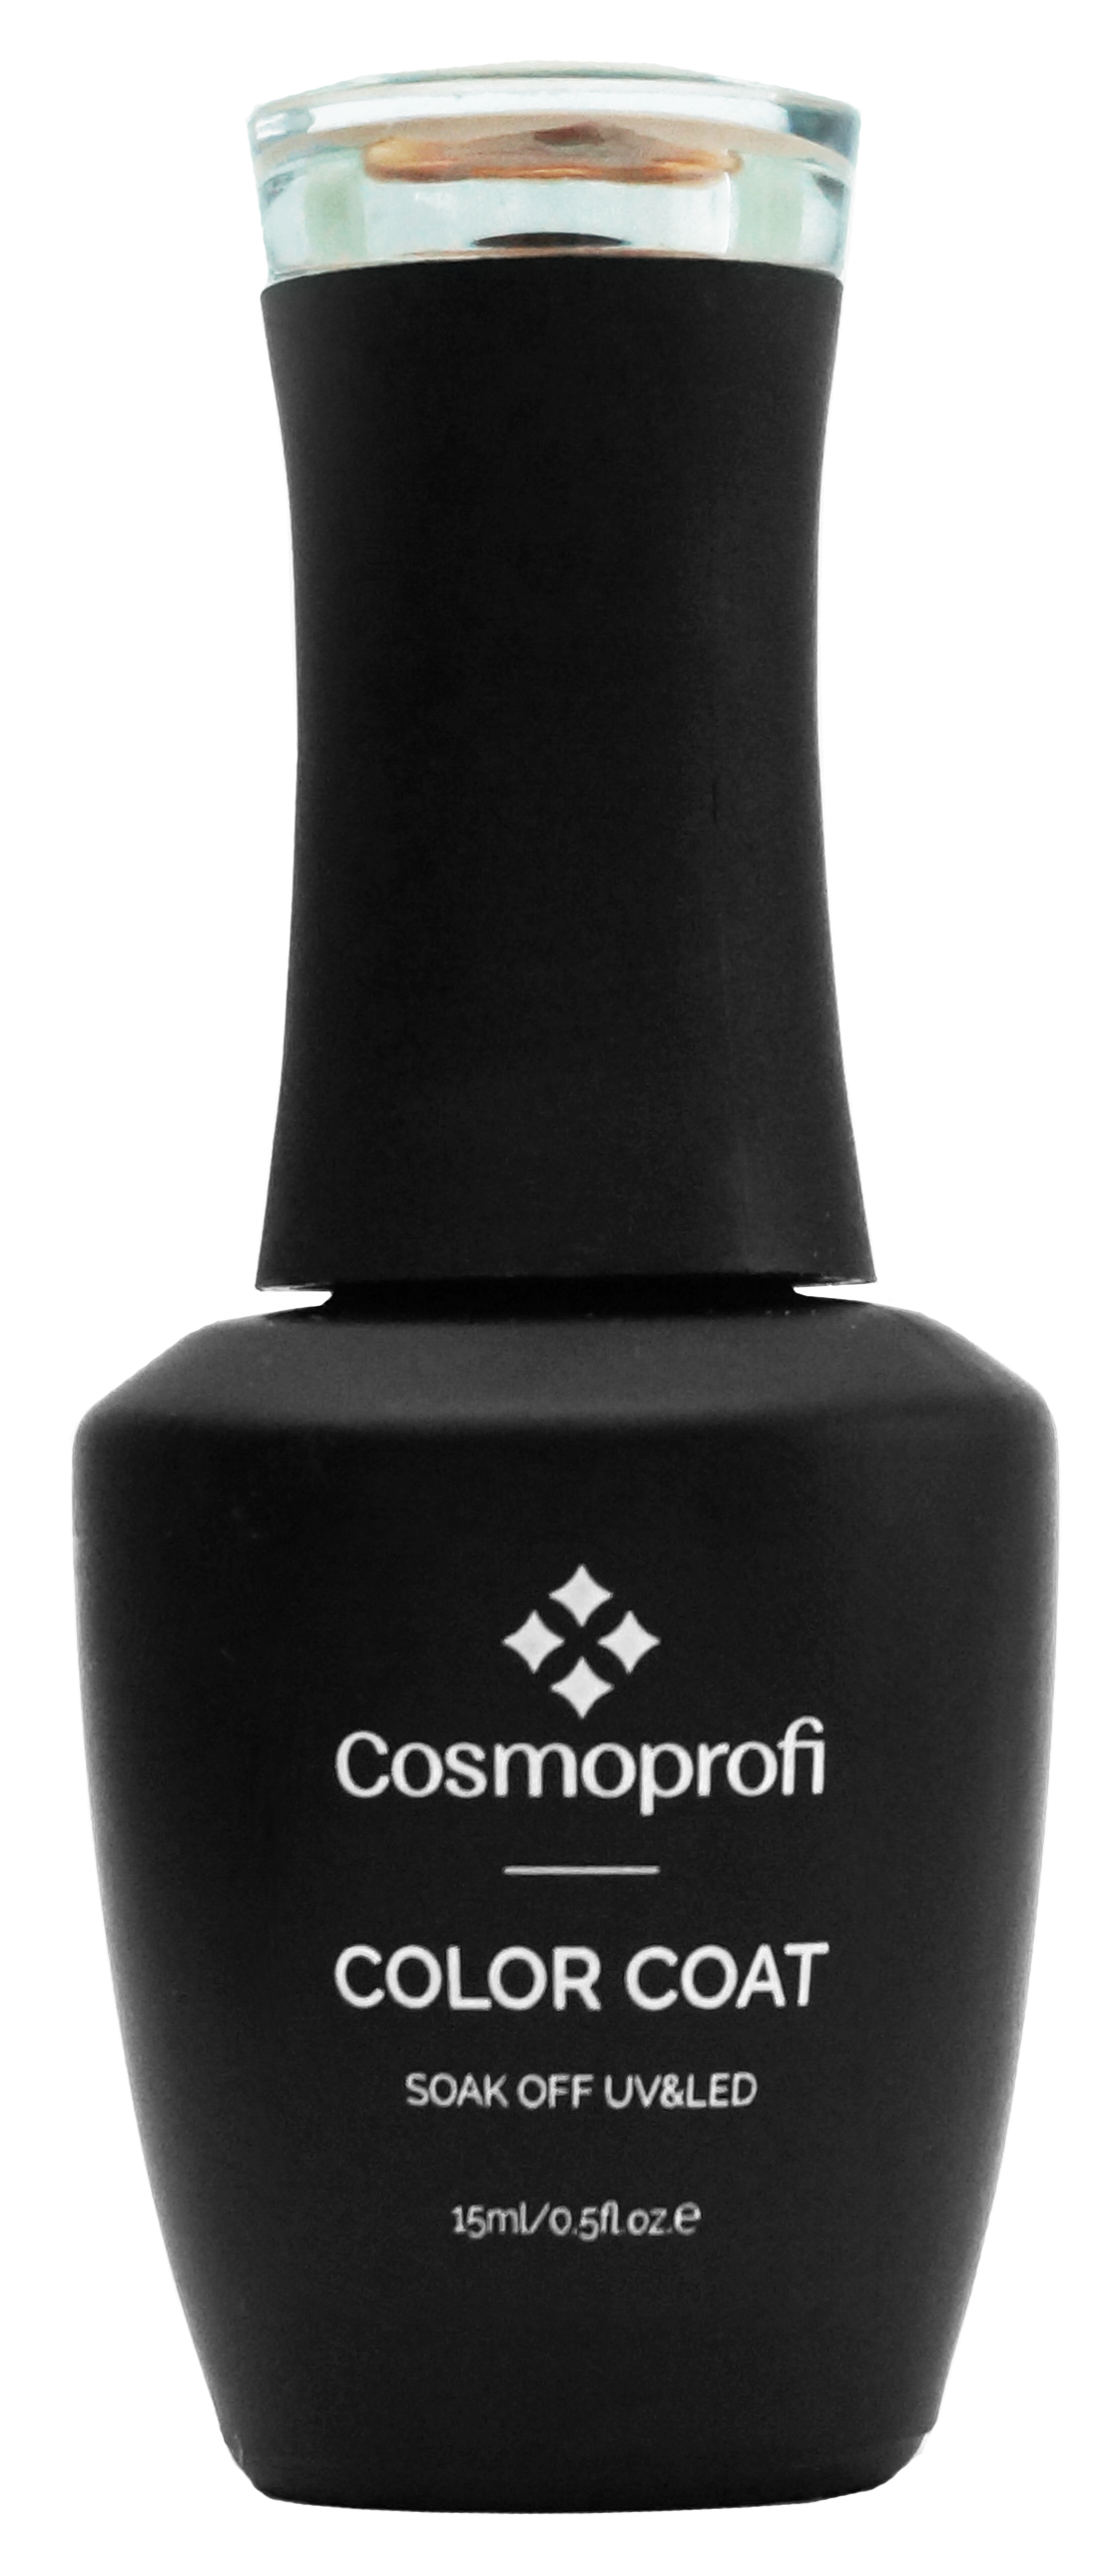 Гель-лак Cosmoprofi, Color coat № 313, 15 мл